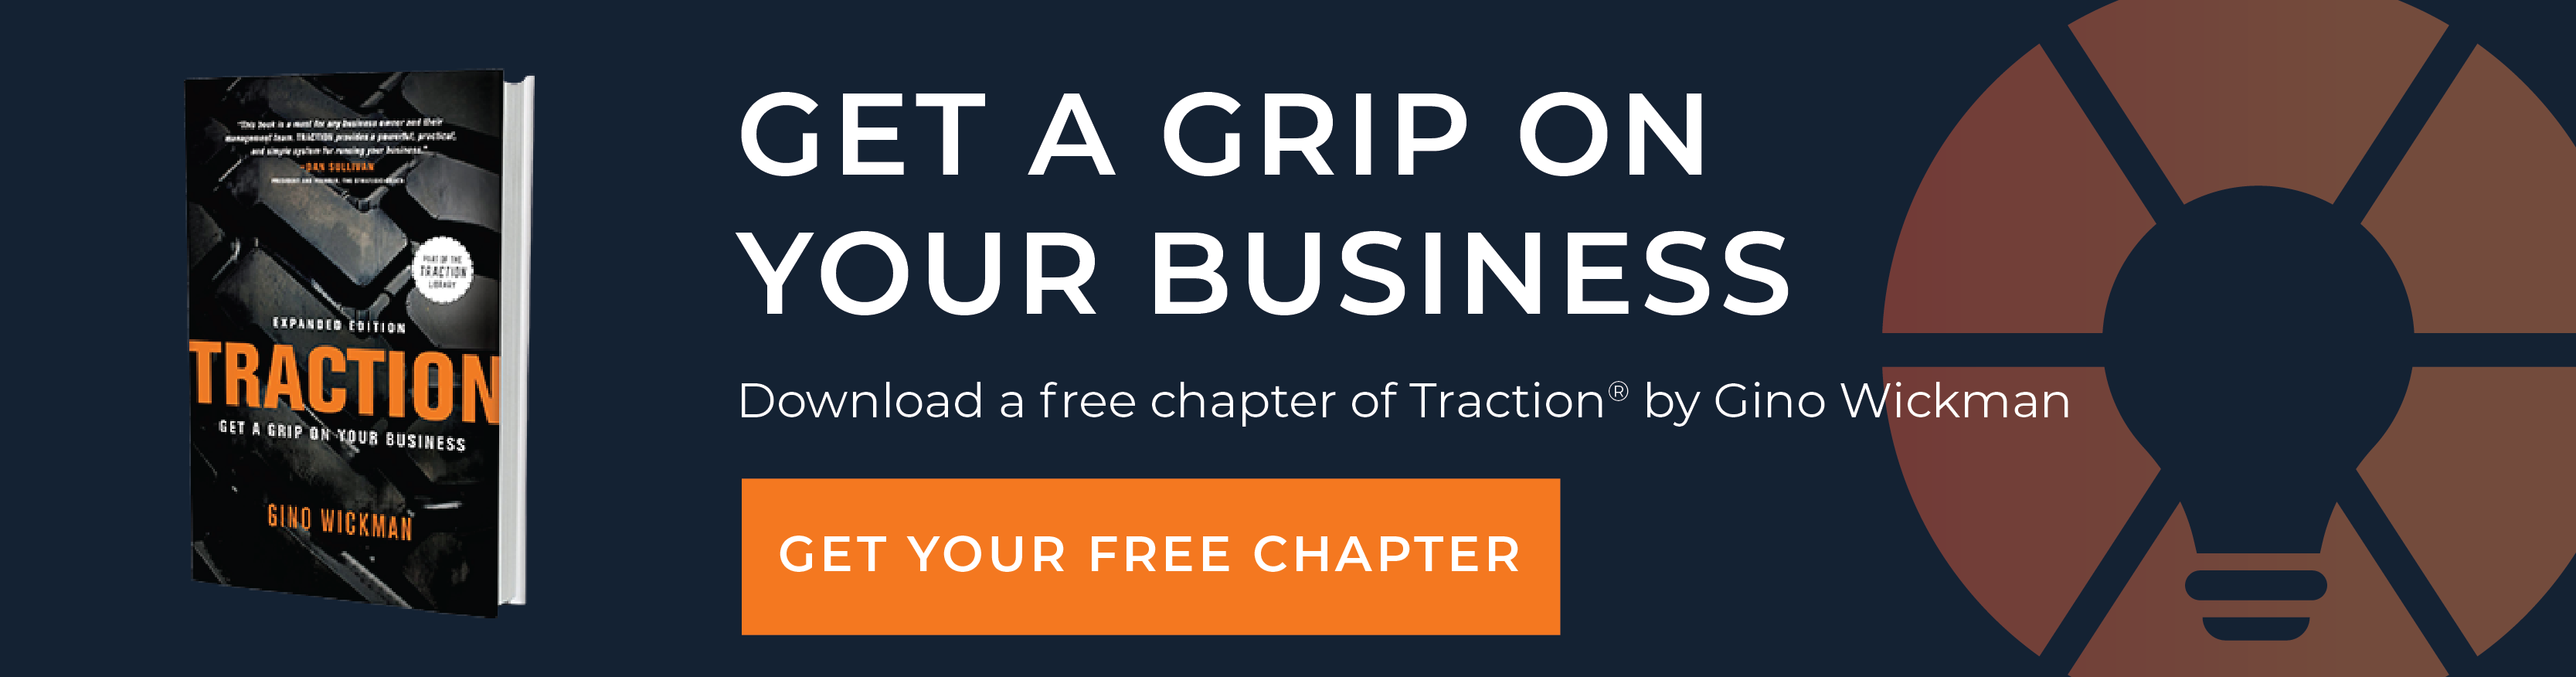 Get a Grip on Your Business. Click here to download a free chapter of the Traction eBook